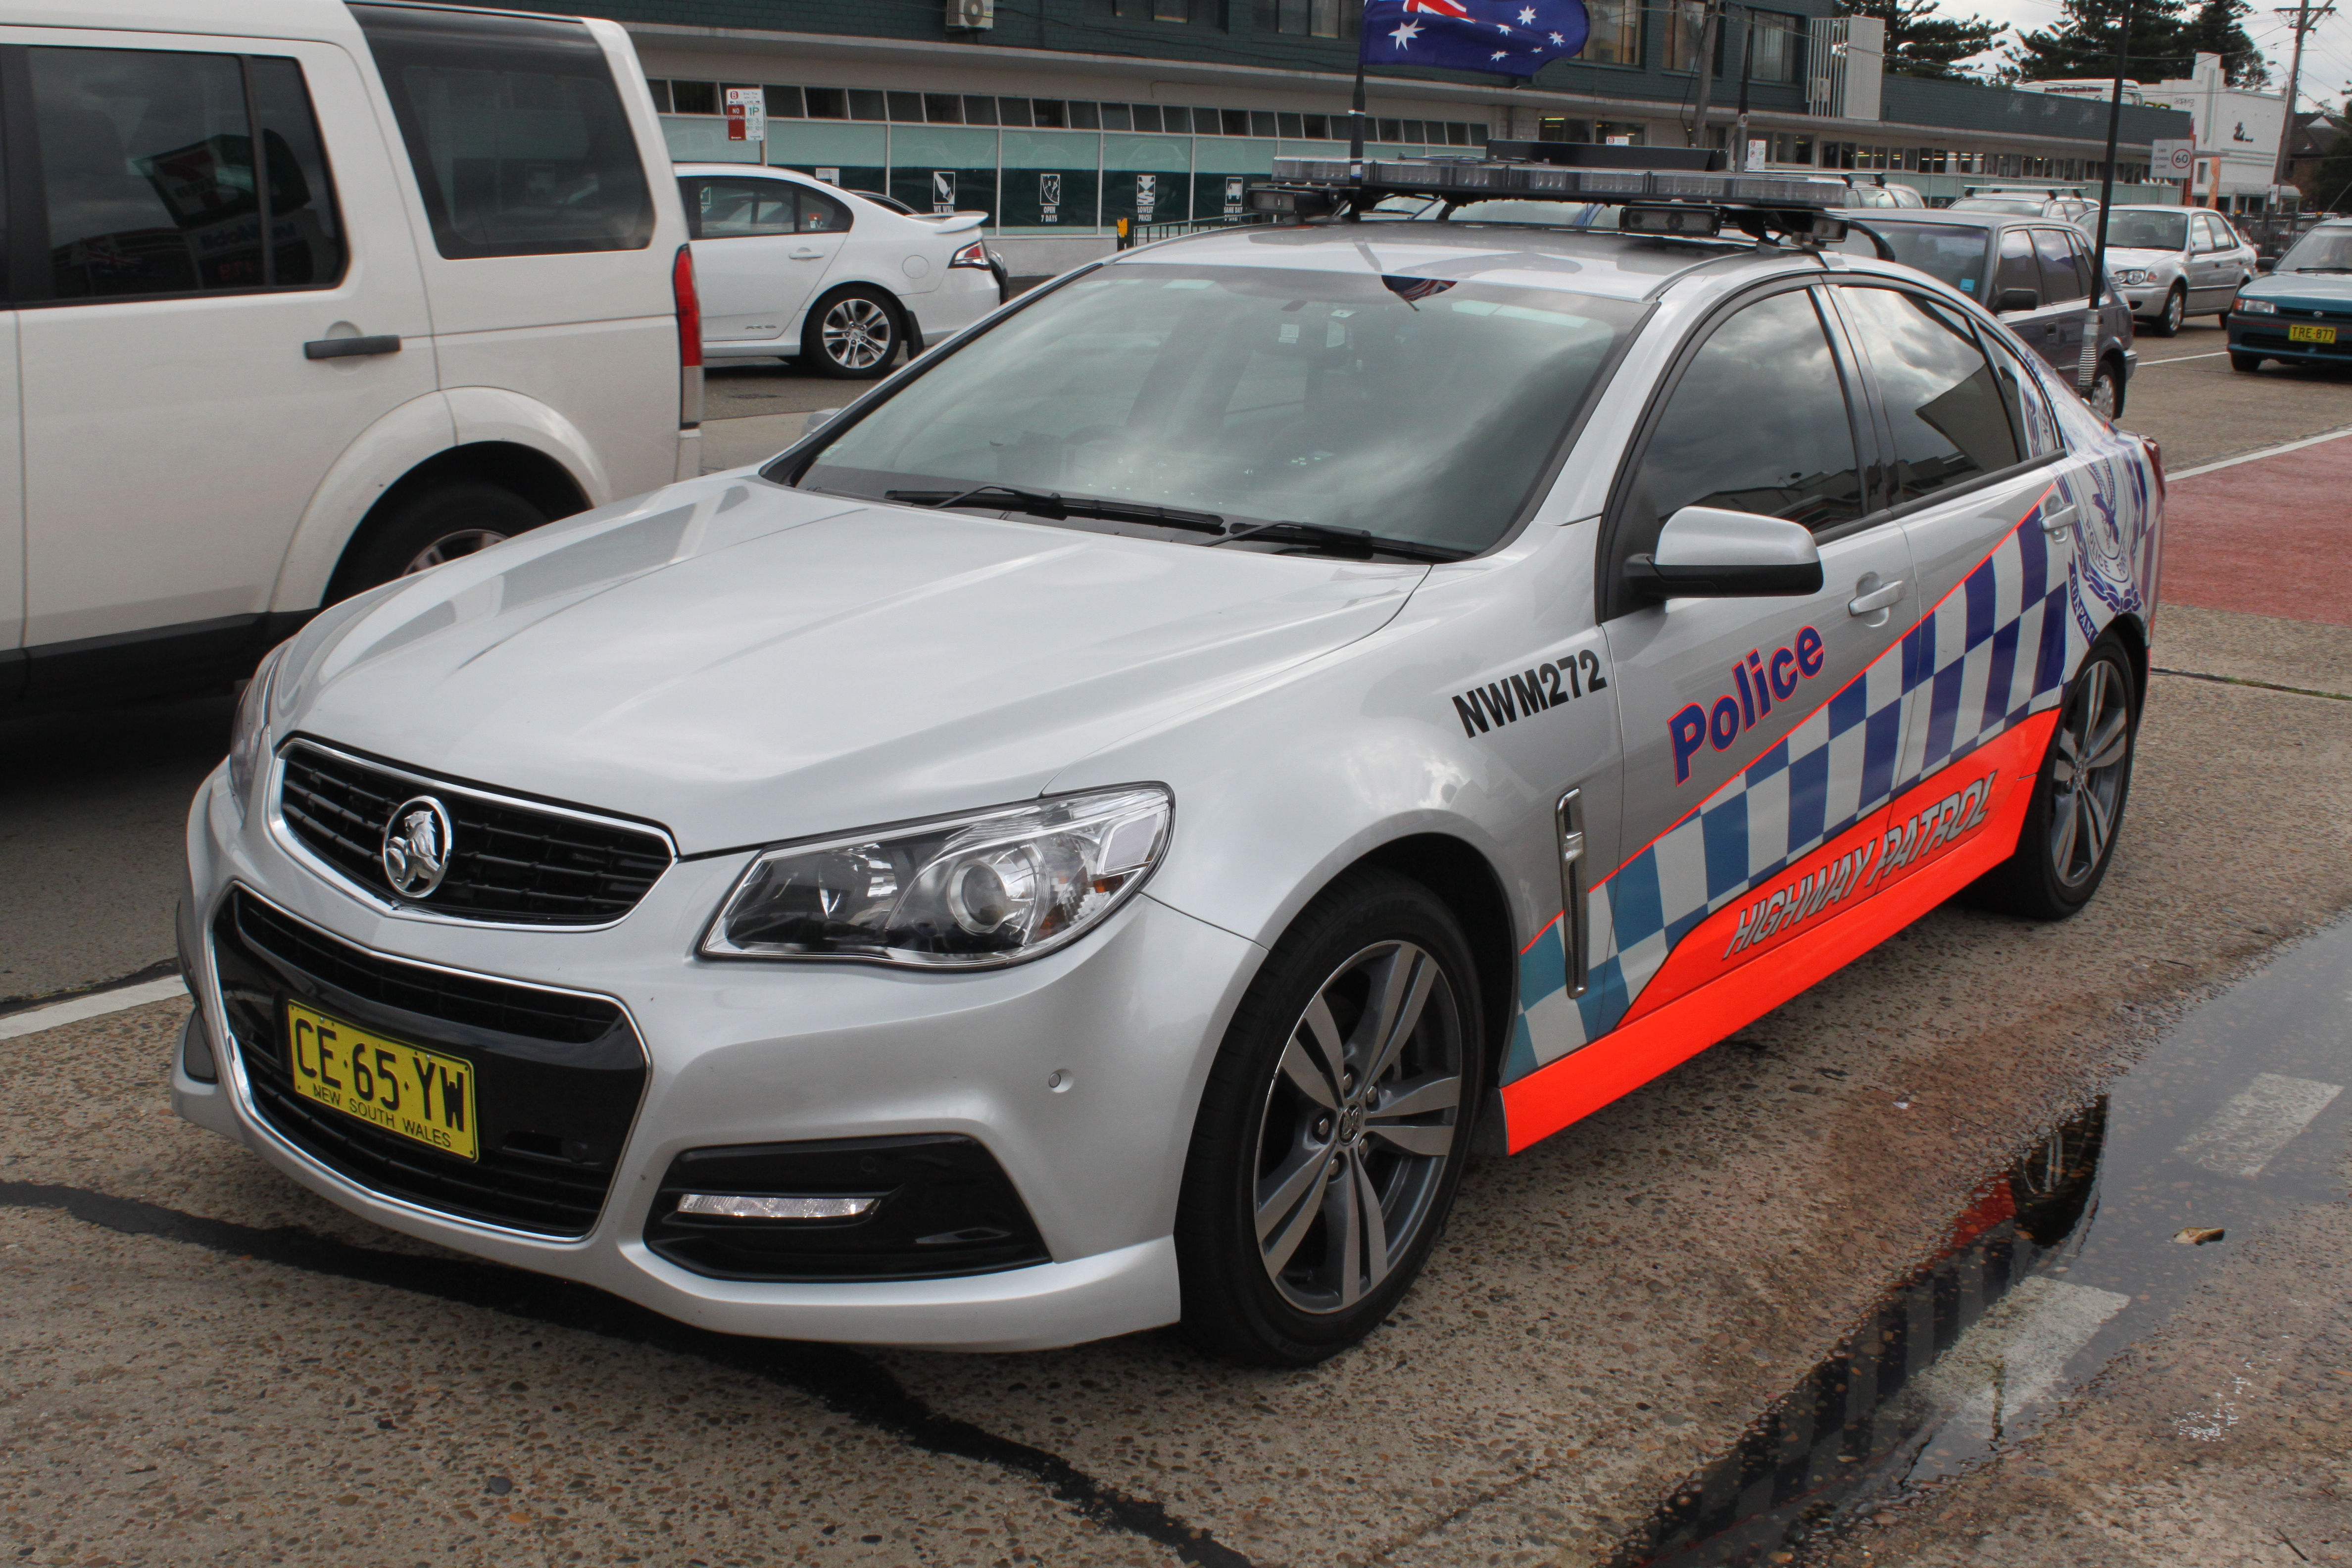 File2015 Holden Commodore VF MY15 SS sedan NSW Police Force